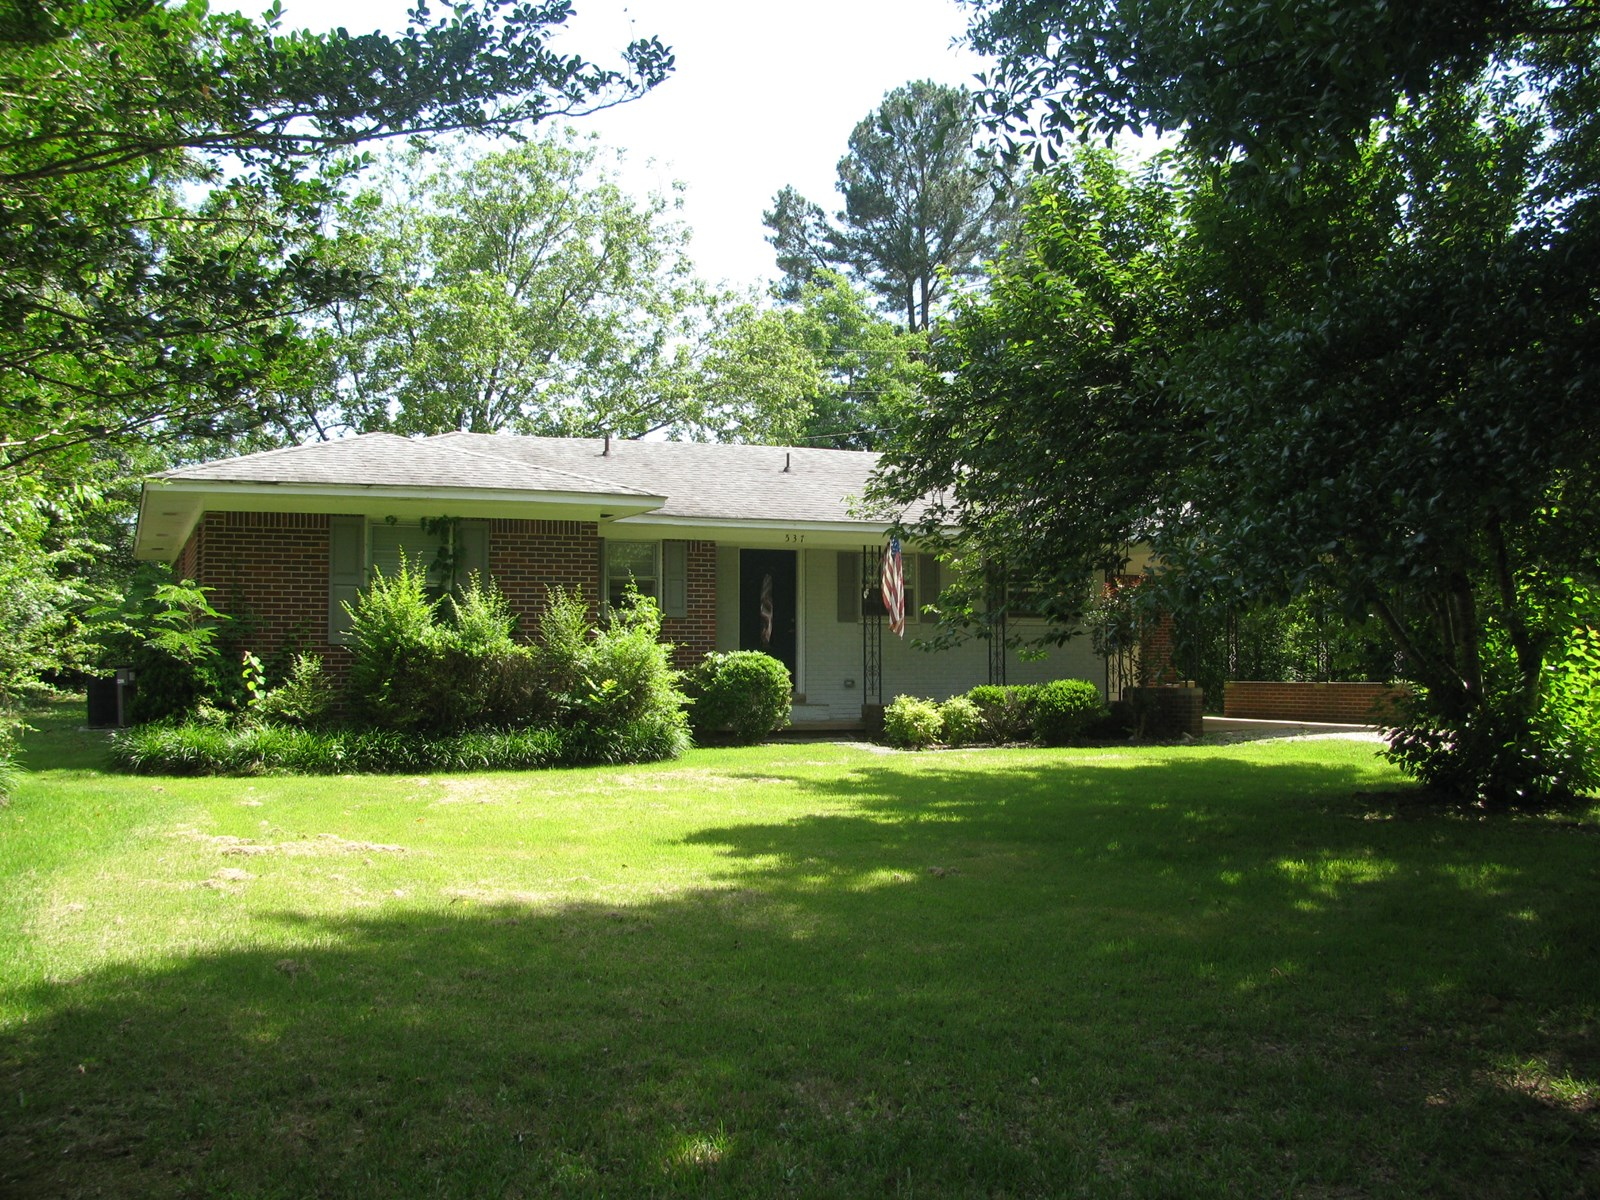 3 BEDROOM, 2 BATH BRICK HOME IN ADAMSVILLE, TN FOR SALE